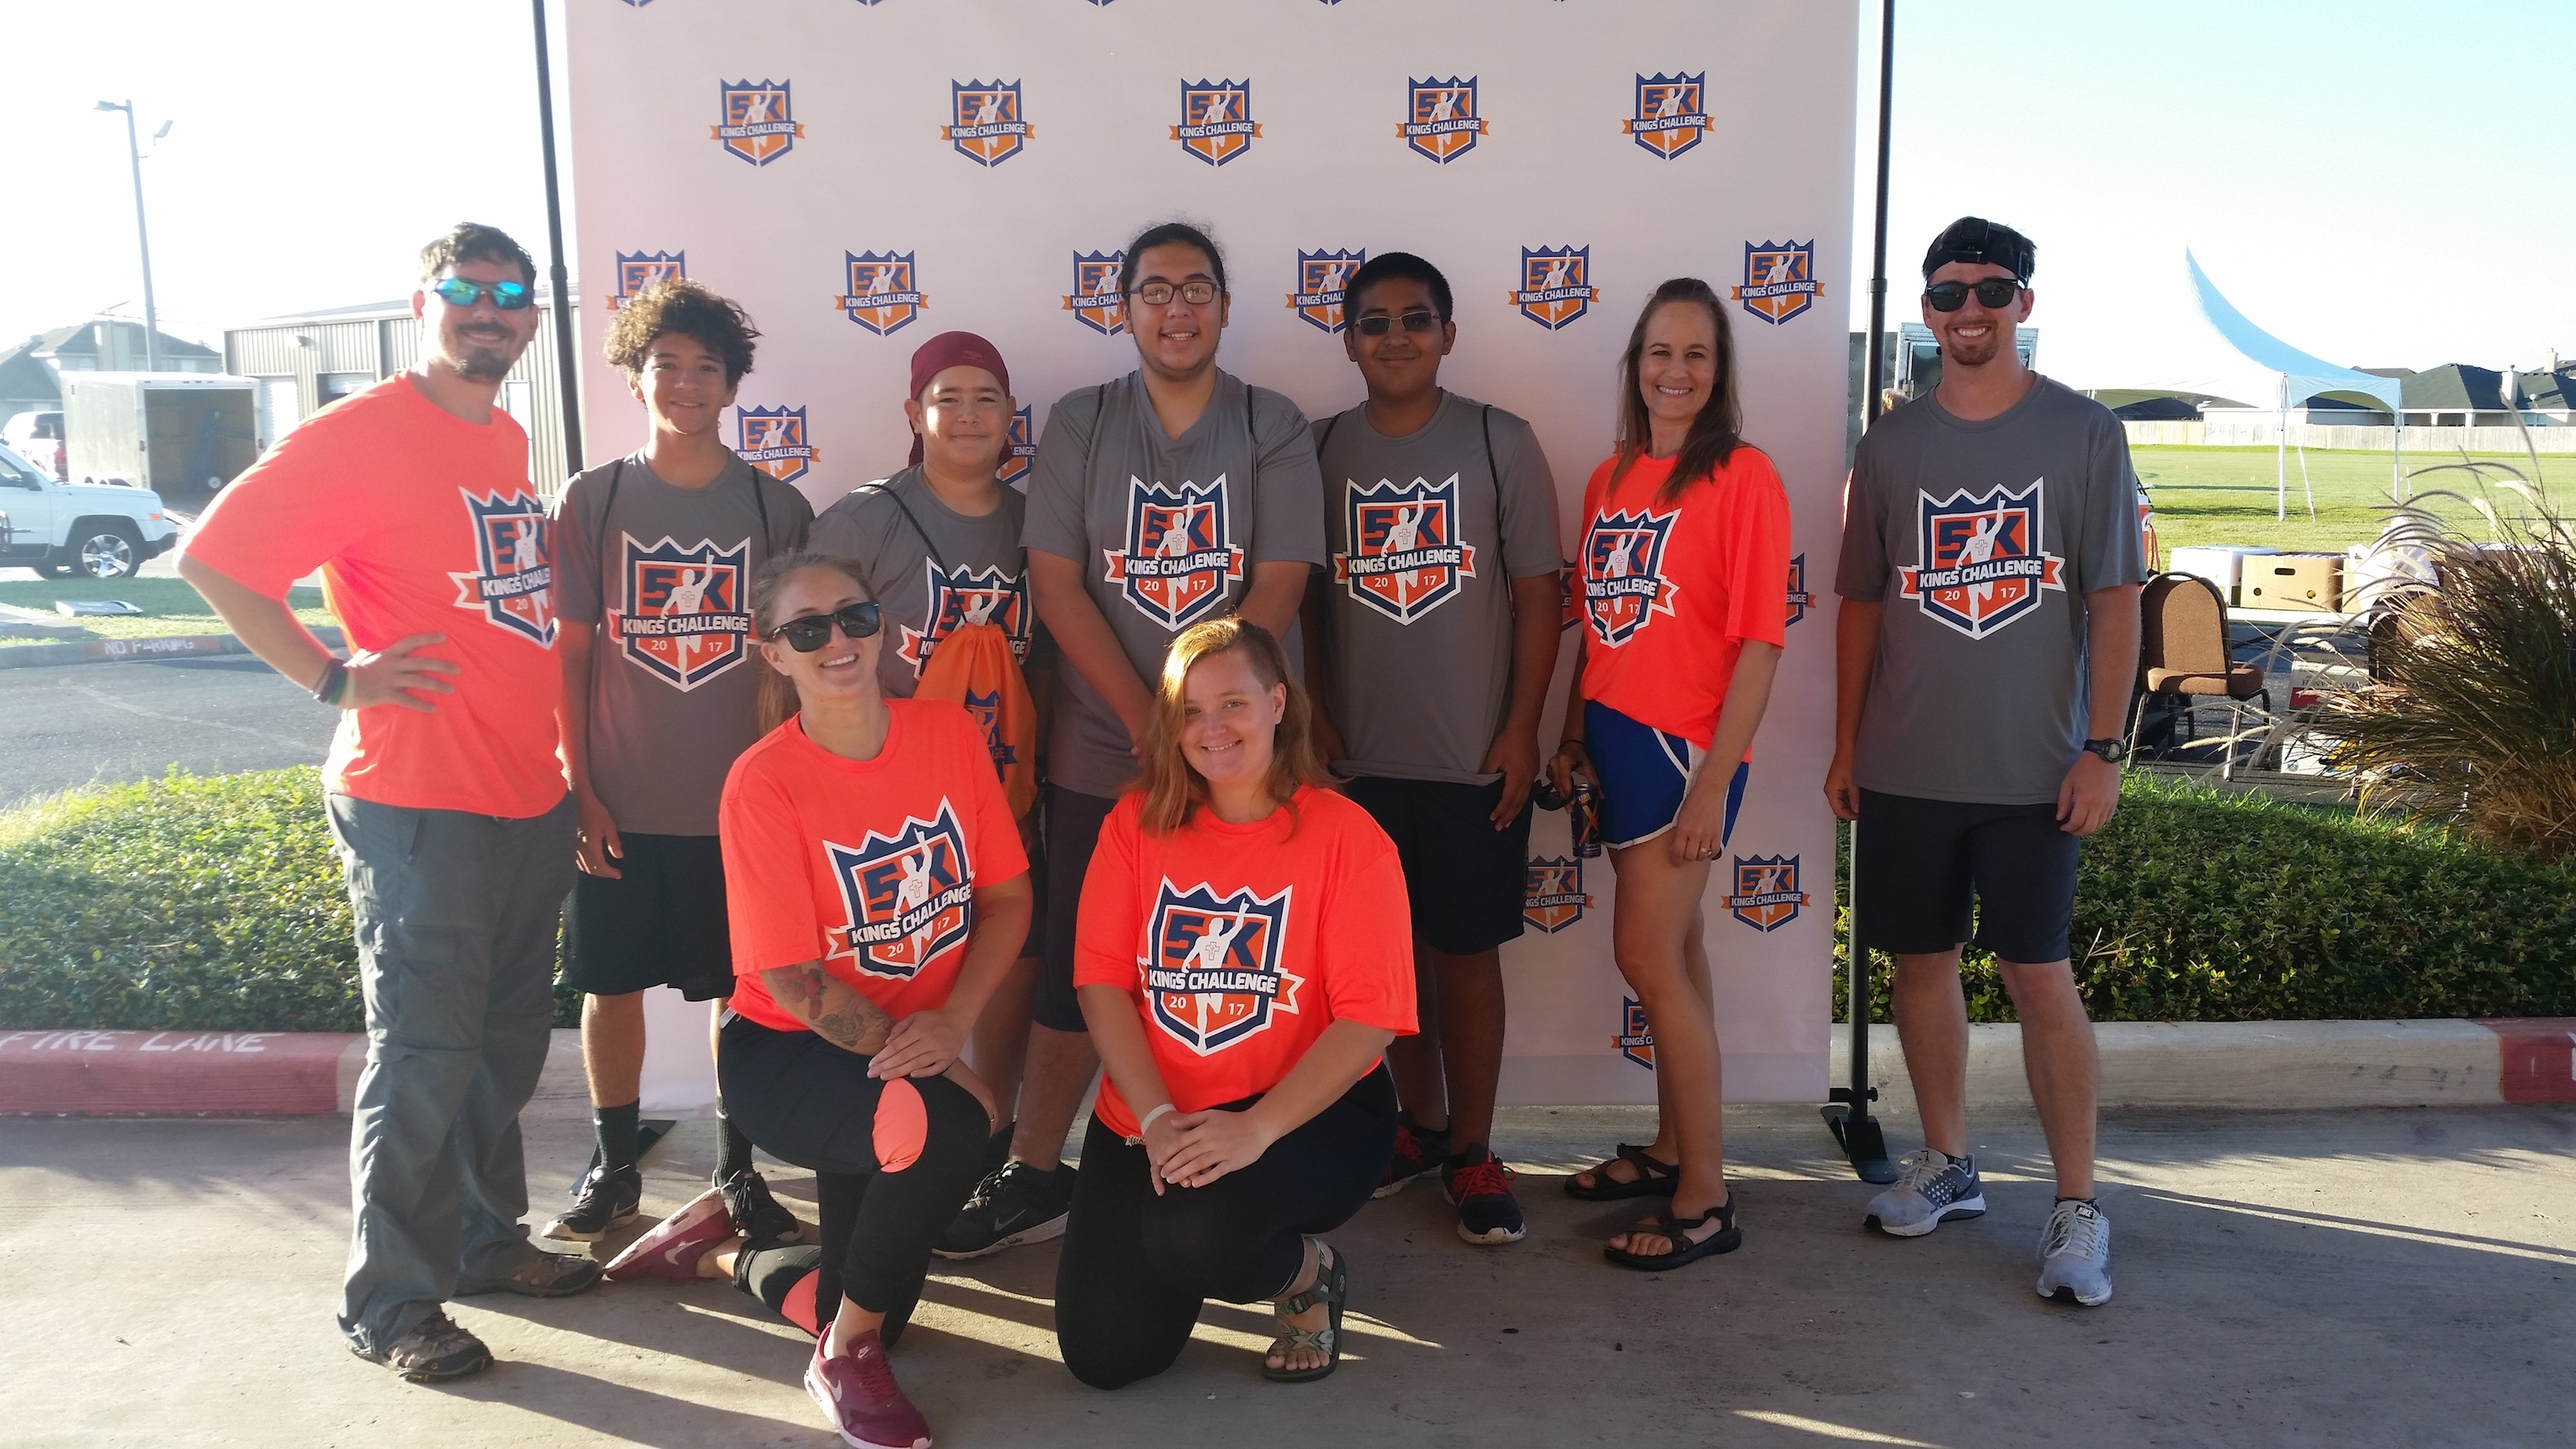 Youth Odyssey crew at the king's challenge 5k